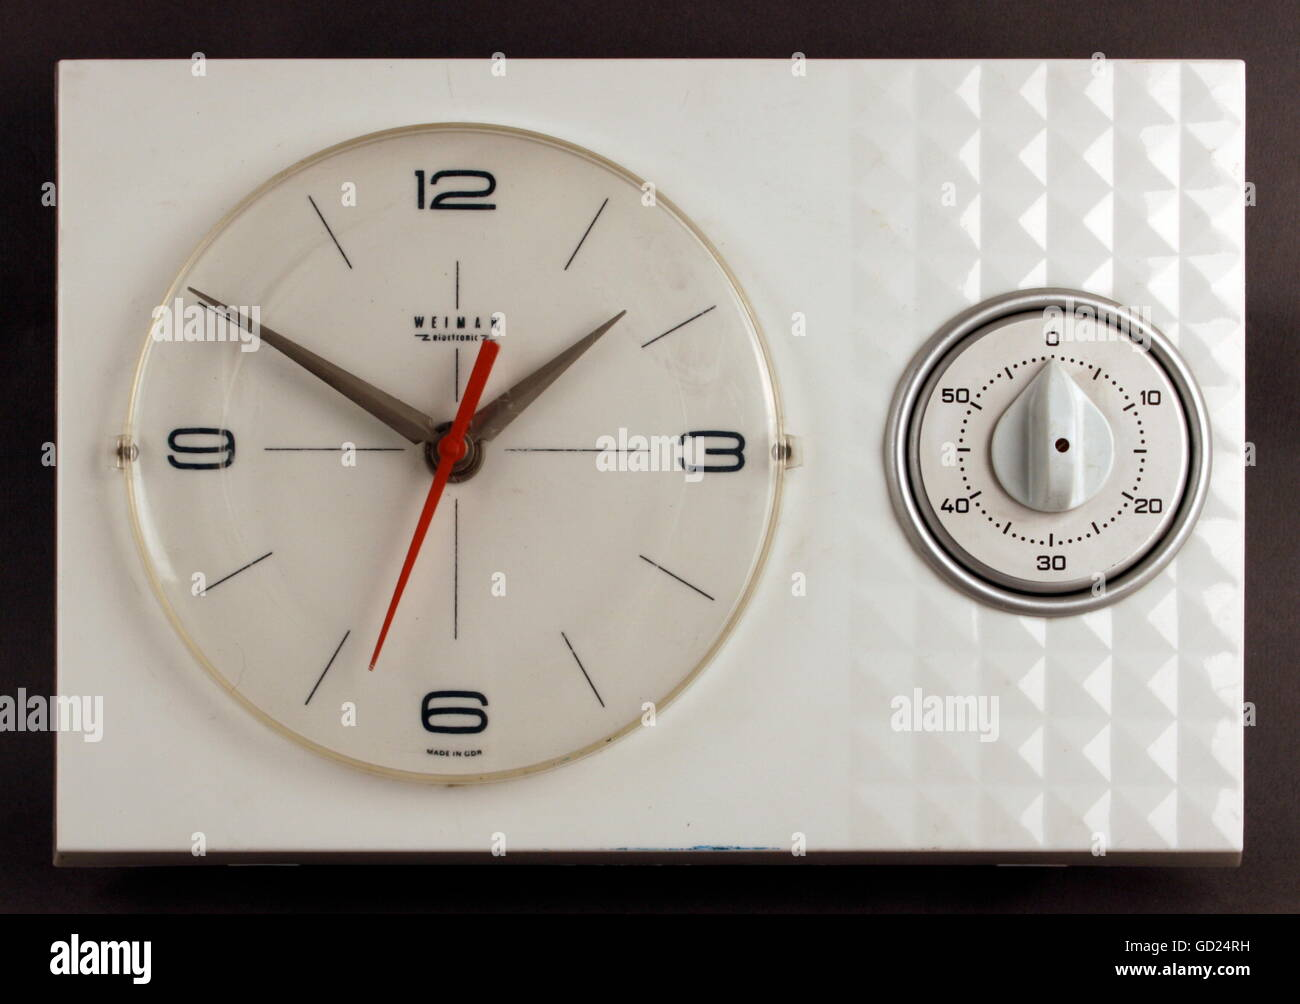 Maritime Küchenuhr Egg Timers Stock Photos Egg Timers Stock Images Alamy